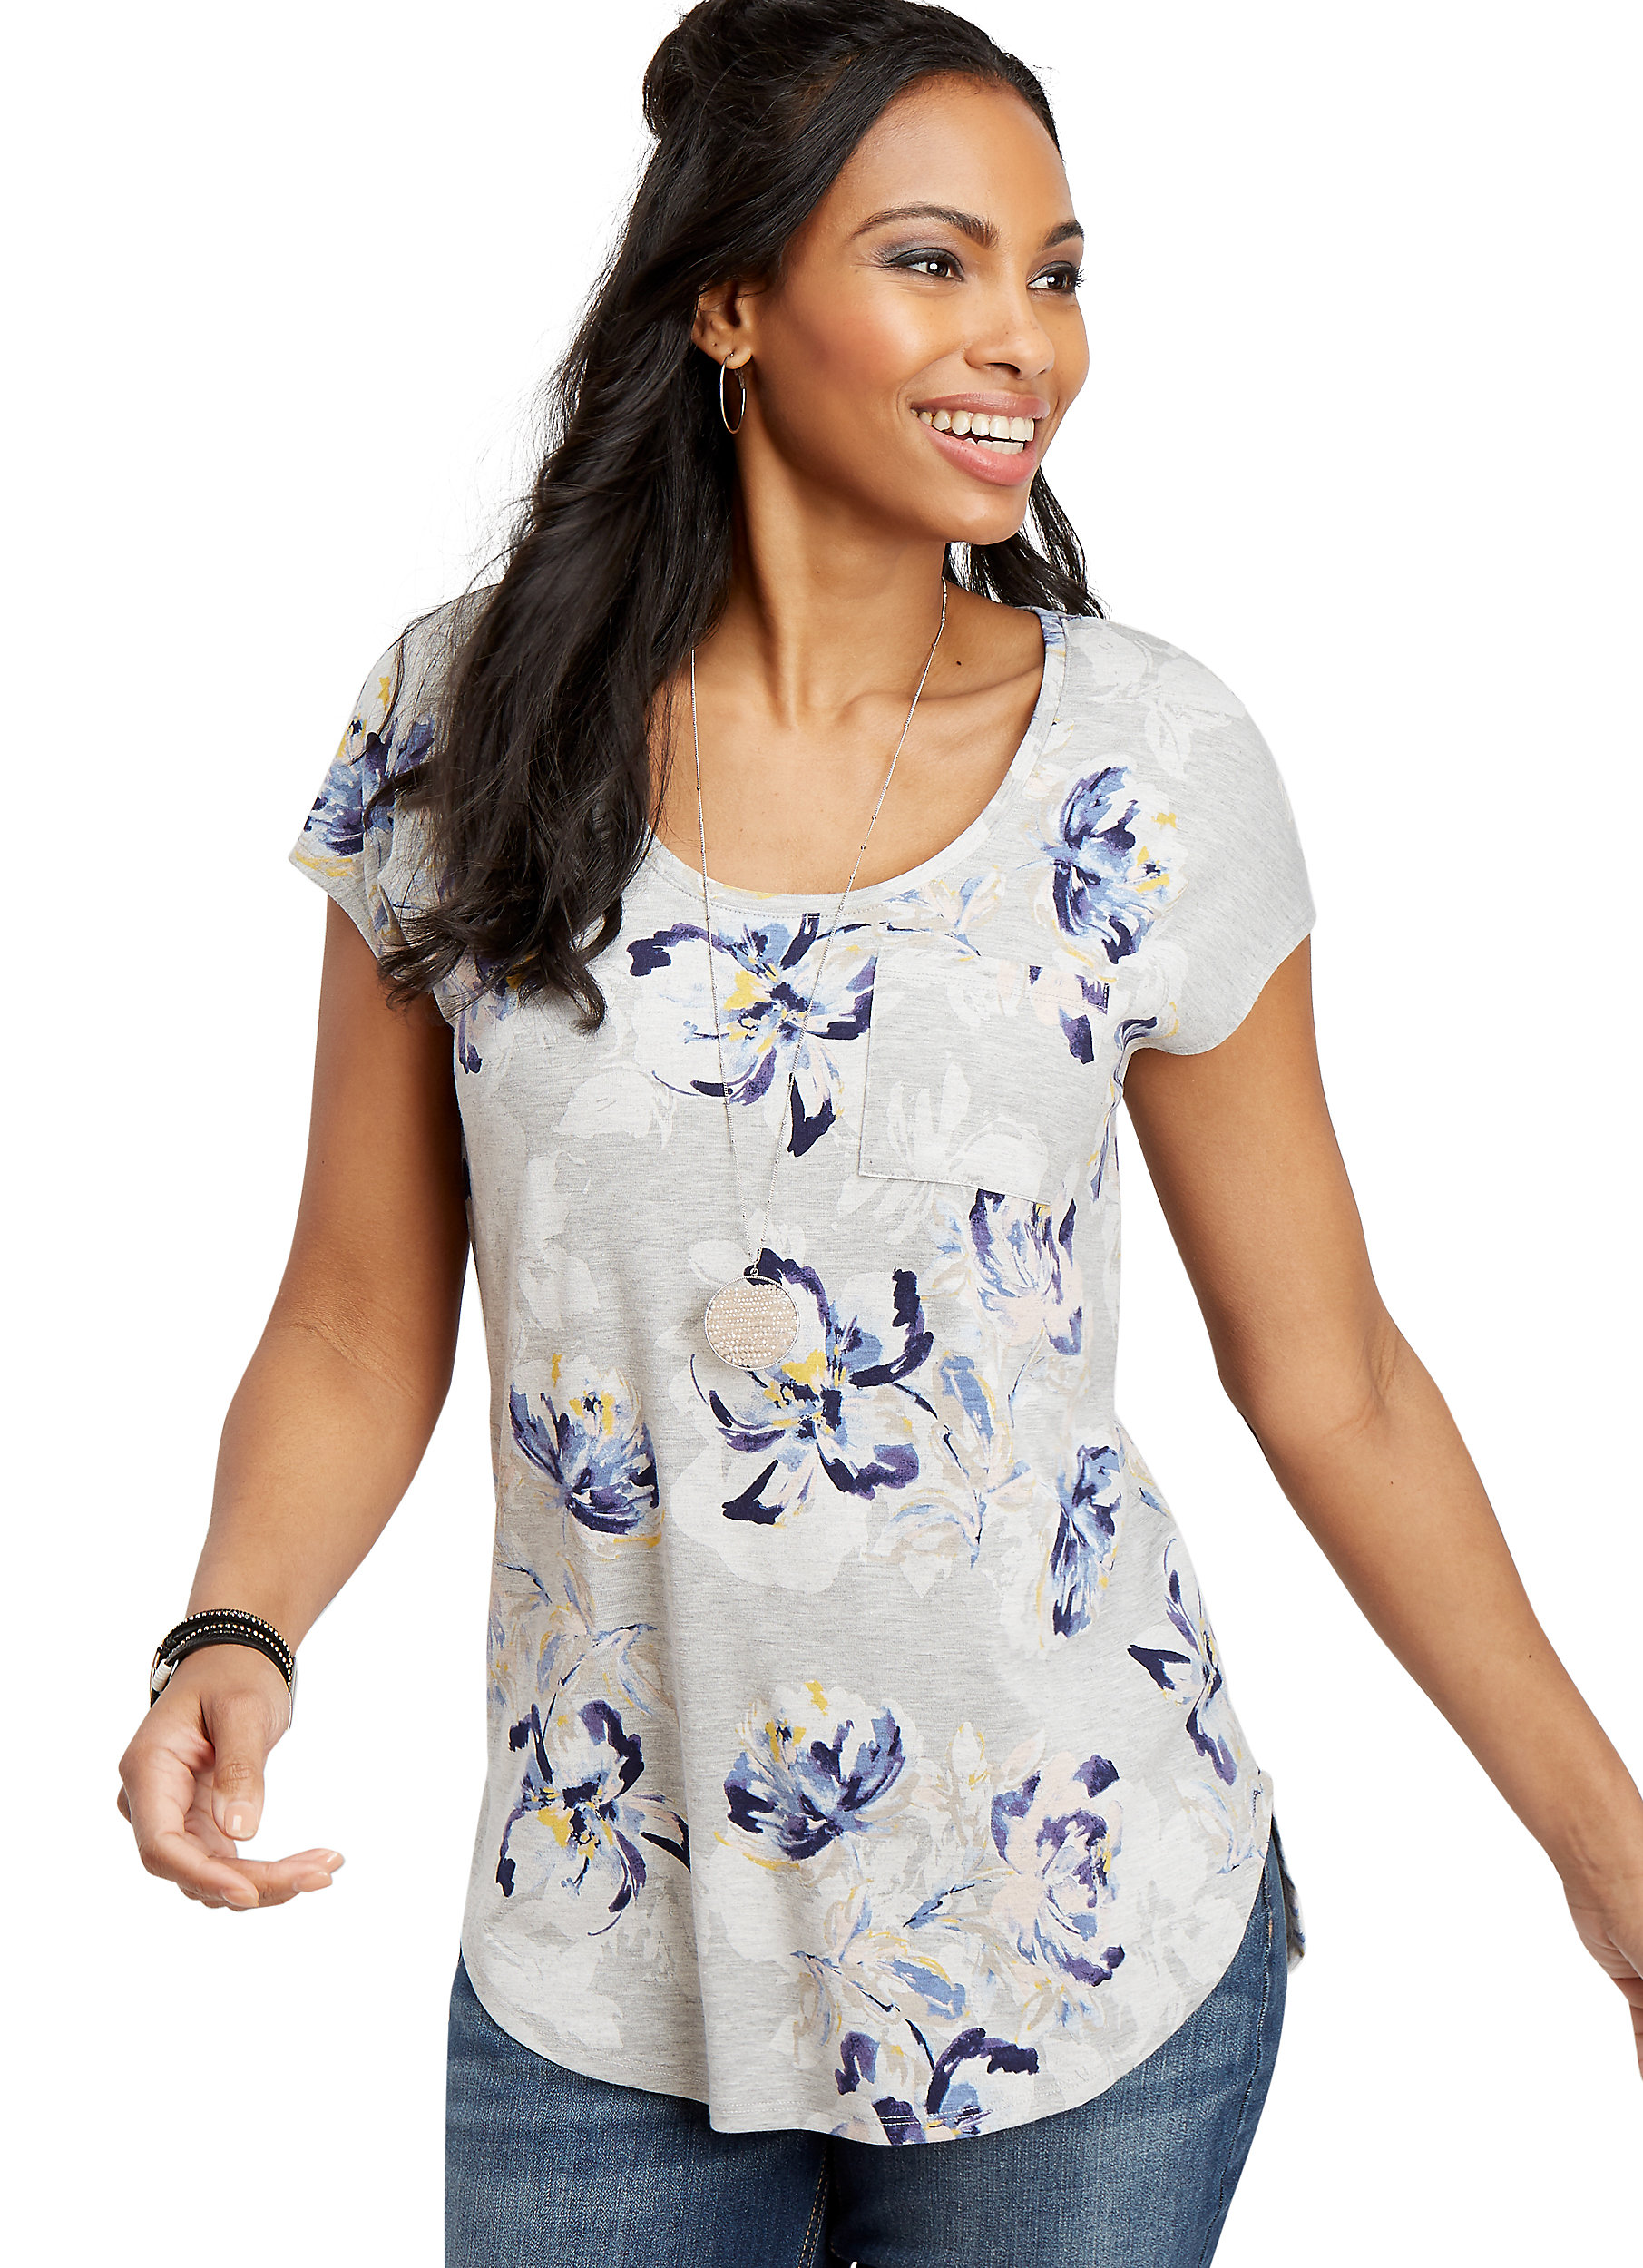 Maurices Women's 24/7 Floral tee - Heather Gray Dolman Shirt